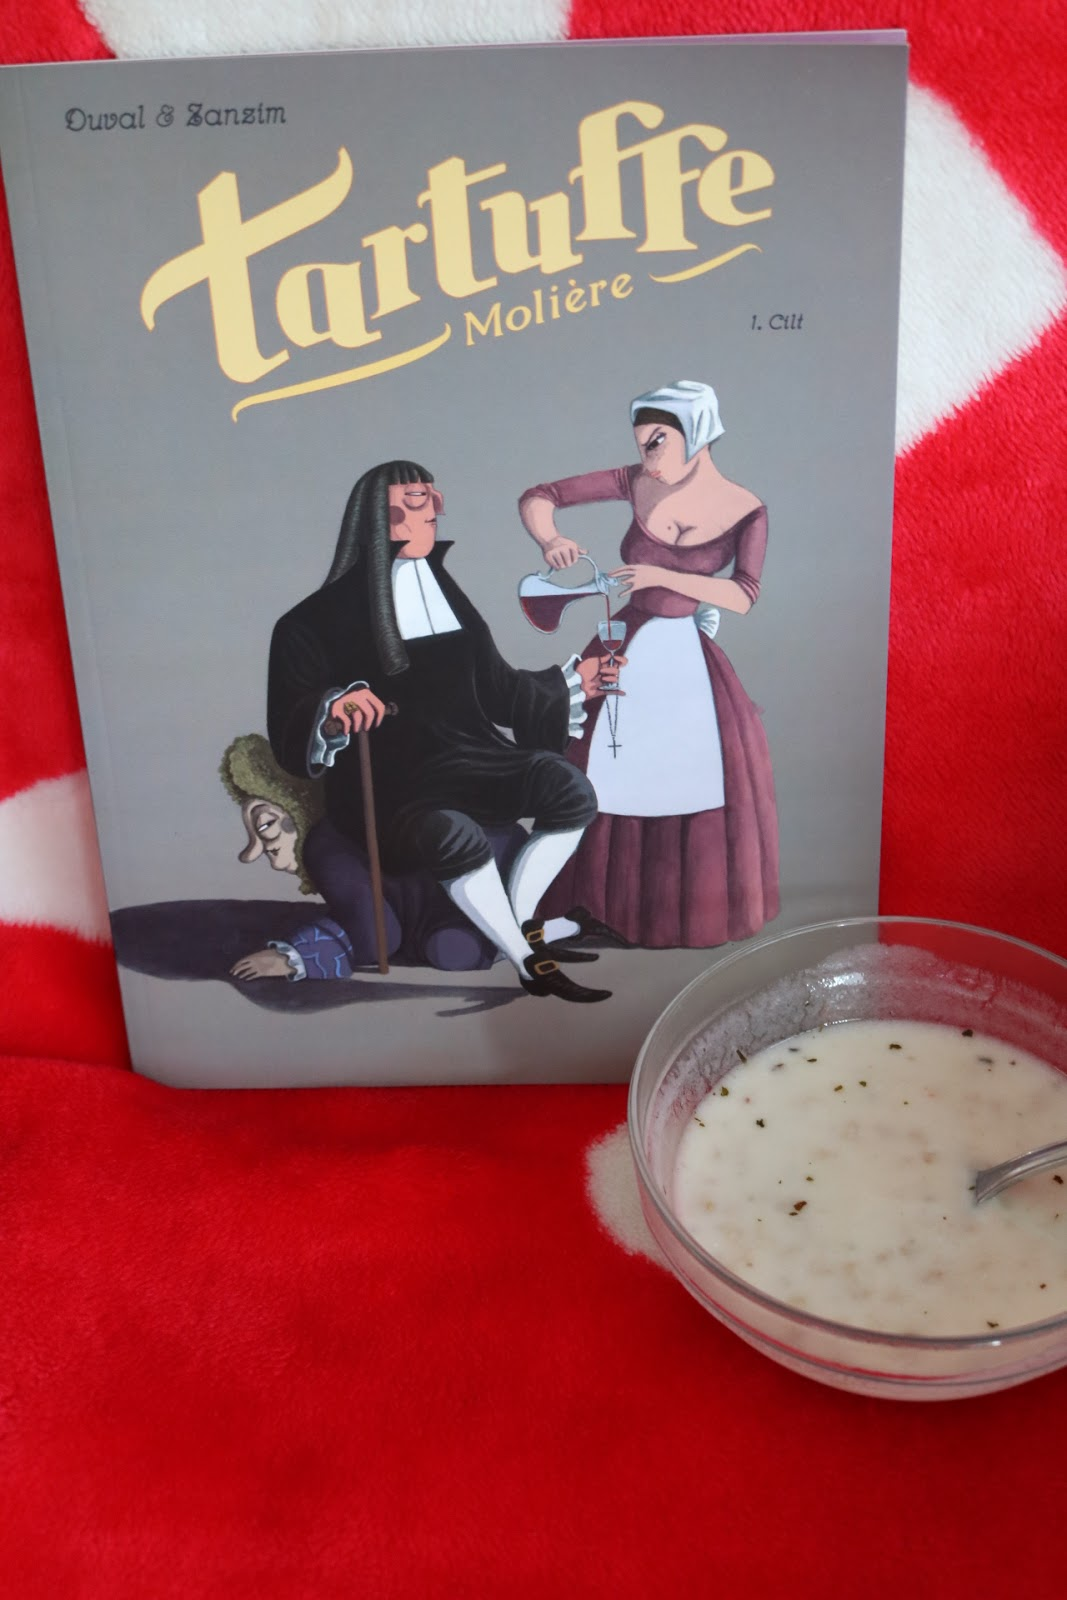 a brief review of molieres comedy tartuffe An analysis of the women in the comedy, tartuffe by moliere pages 1 words 476 tartuffe, moliere, women in the comedy kibin reviews & testimonials.